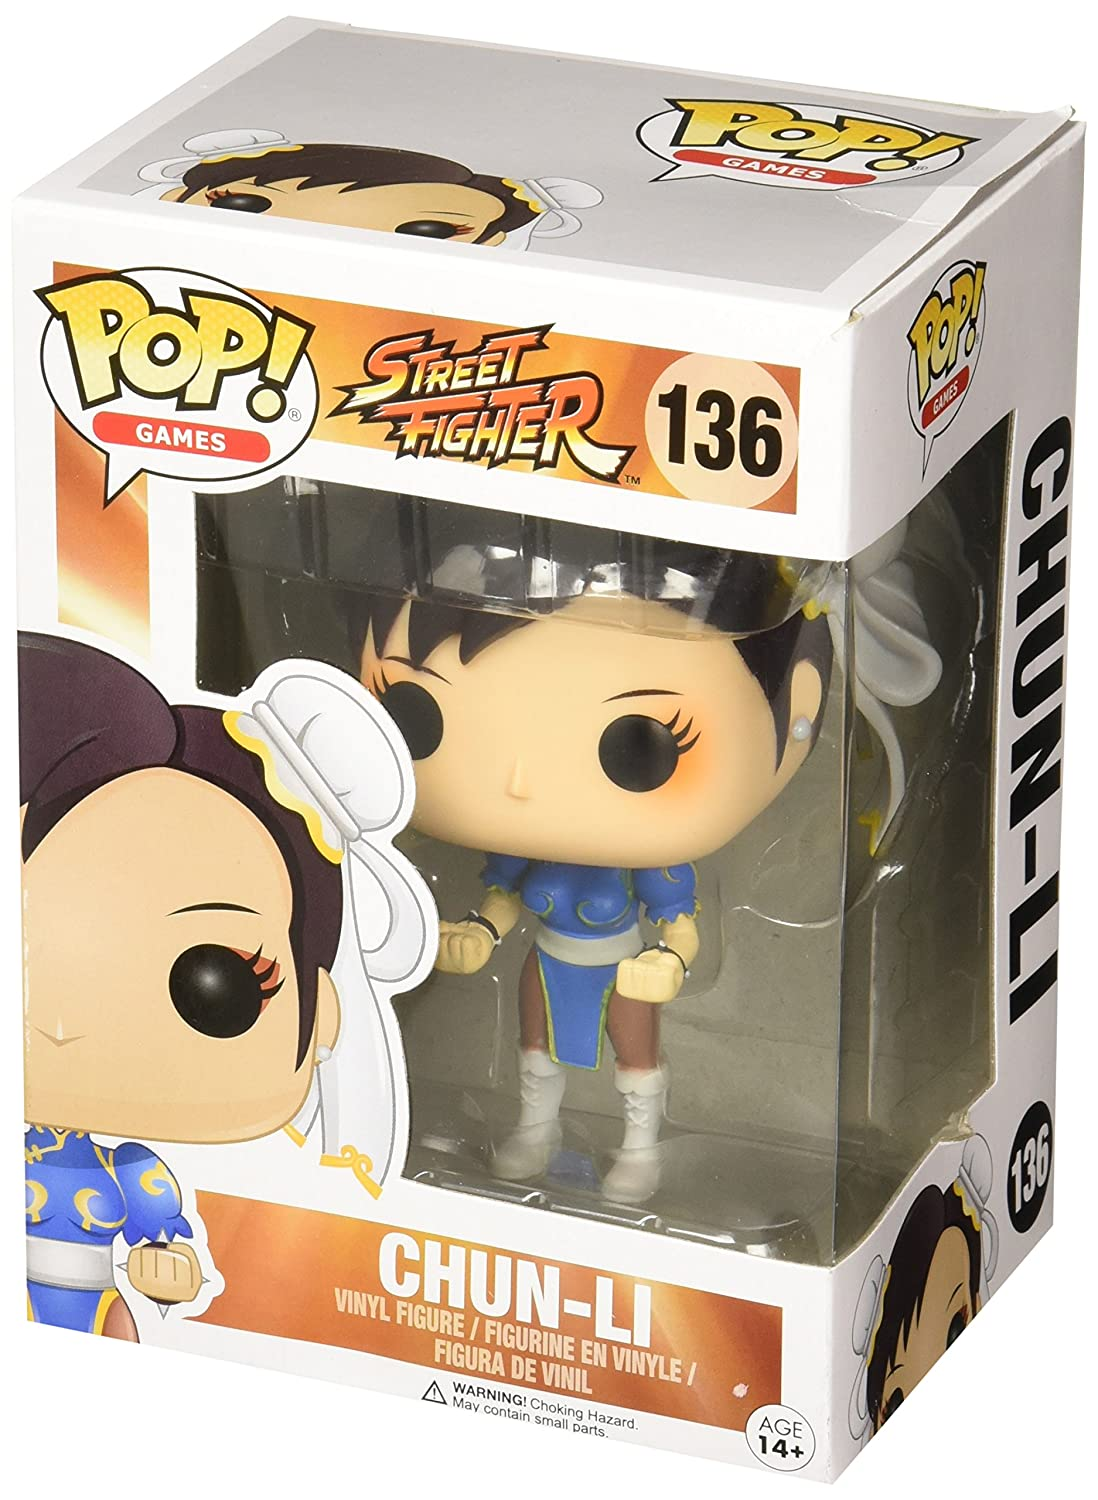 Funko Pop! Street Fighter - Chun Li